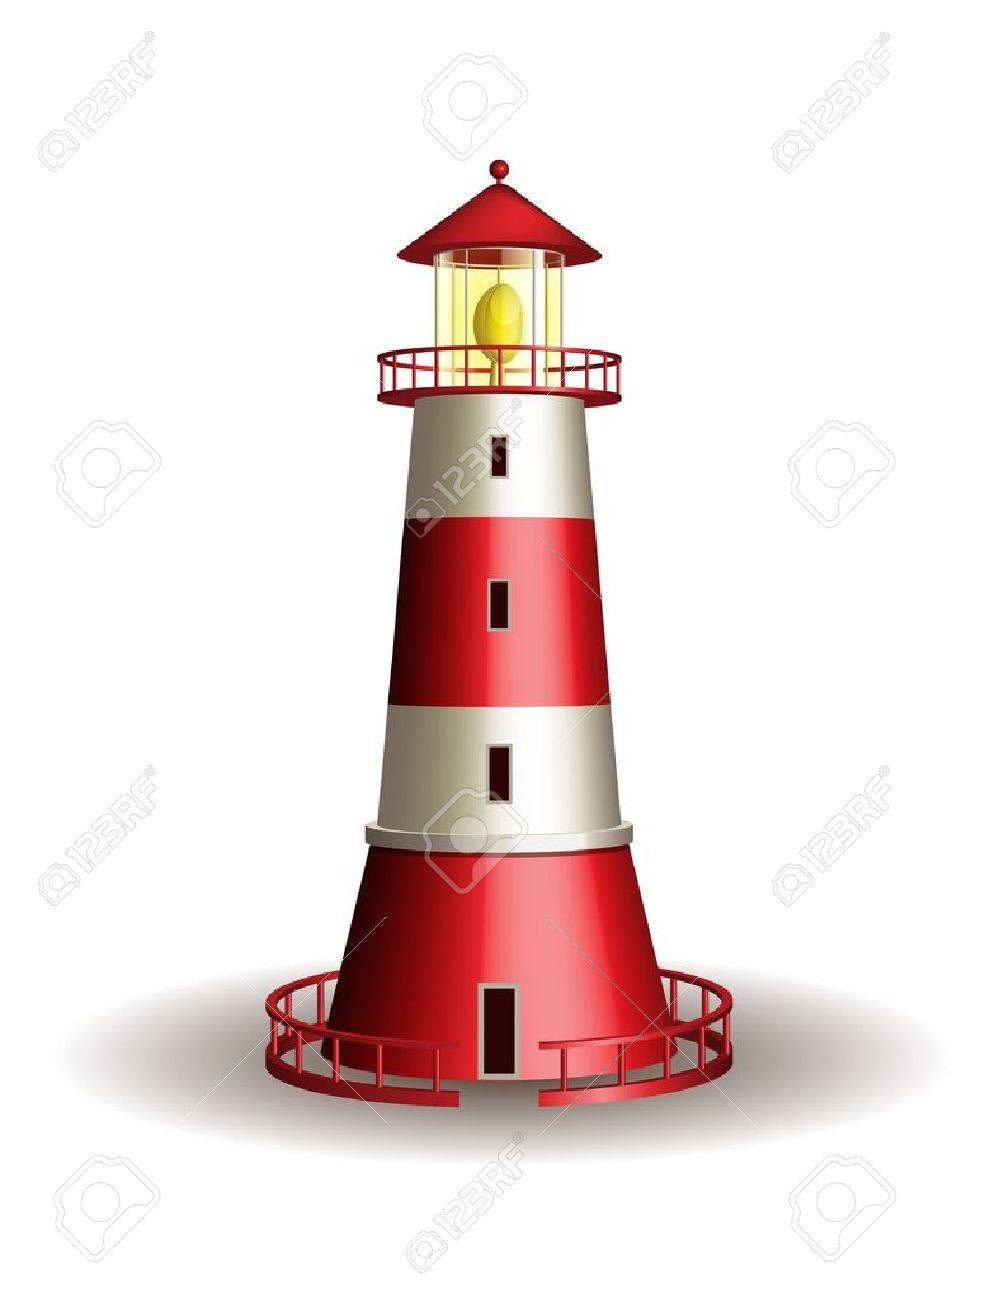 Red lighthouse isolated on white background  illustration Stock Vector - 19110352